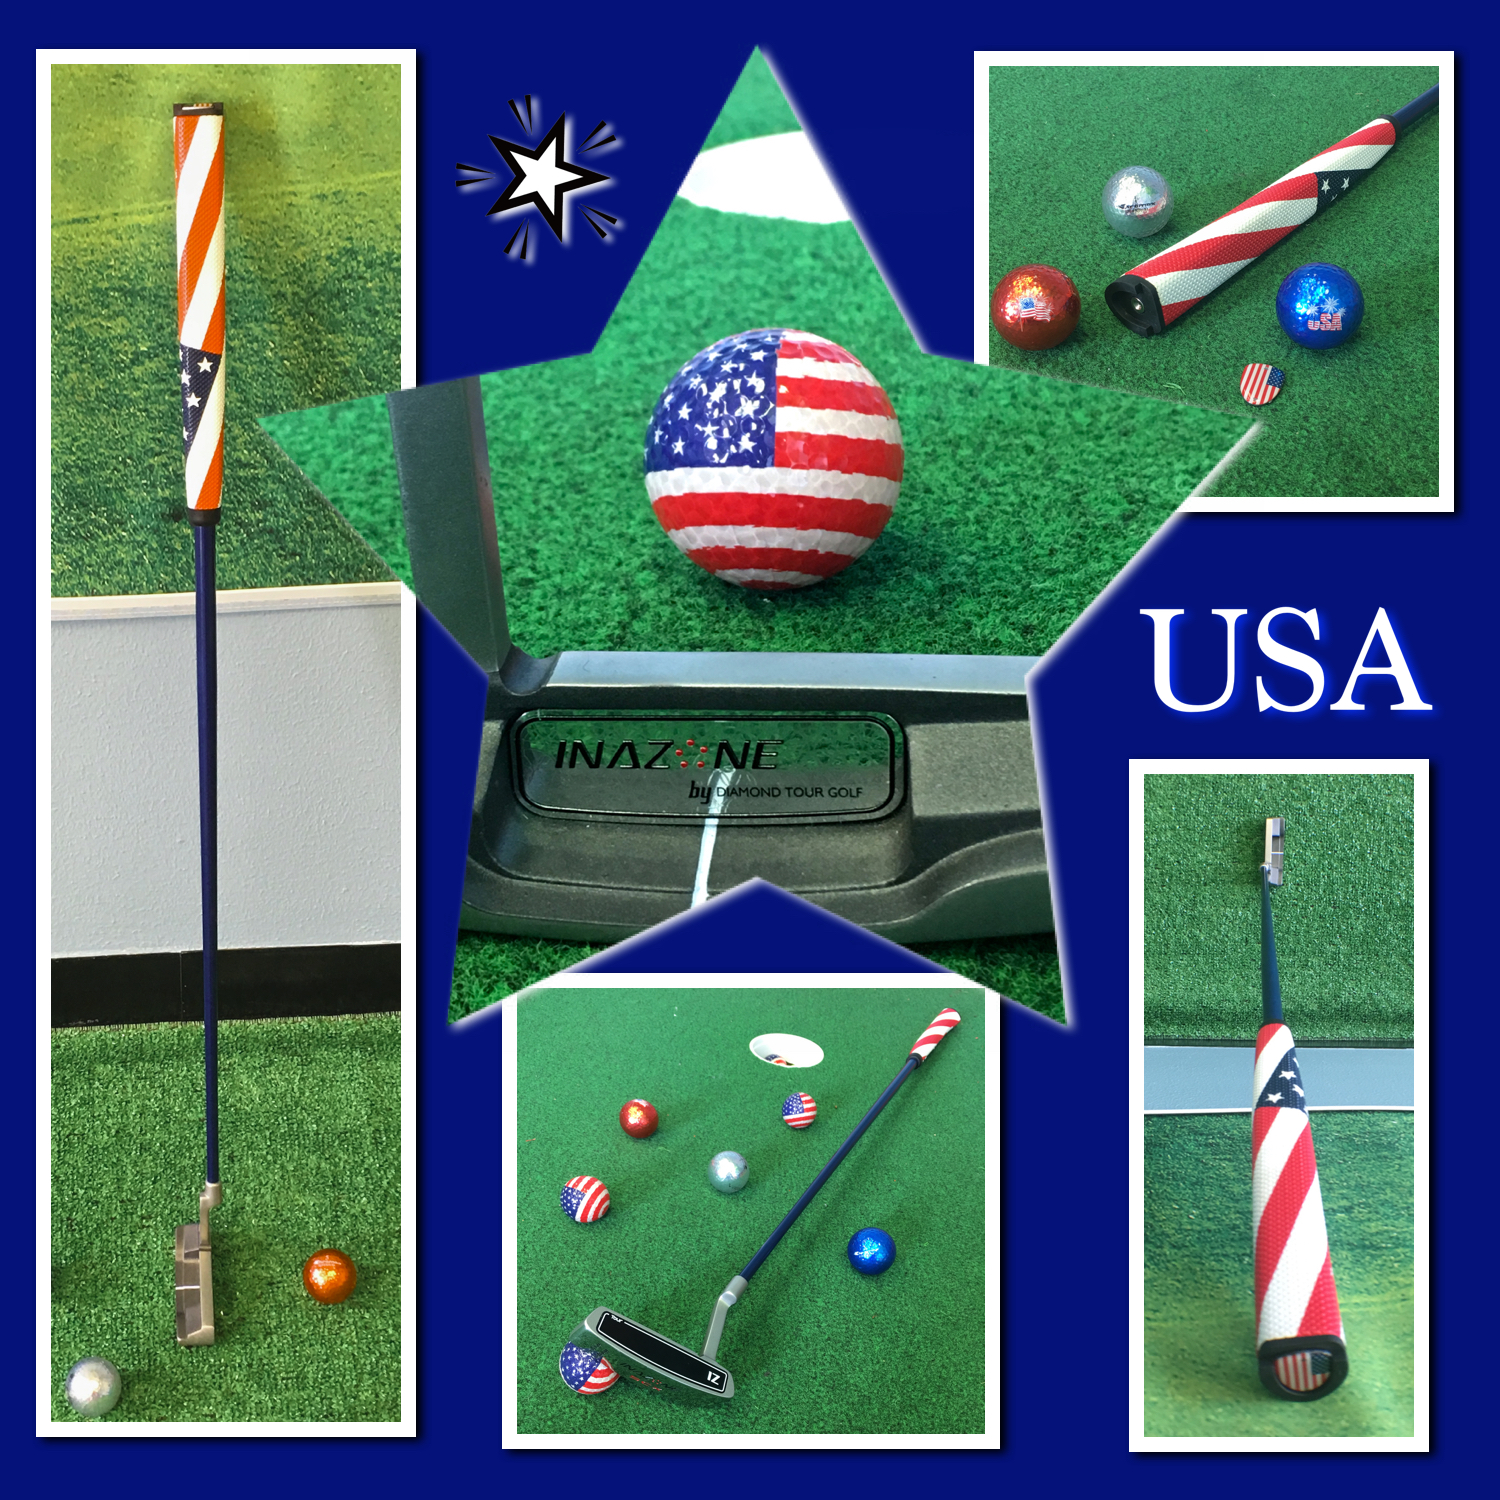 USA Mini-Golf Team